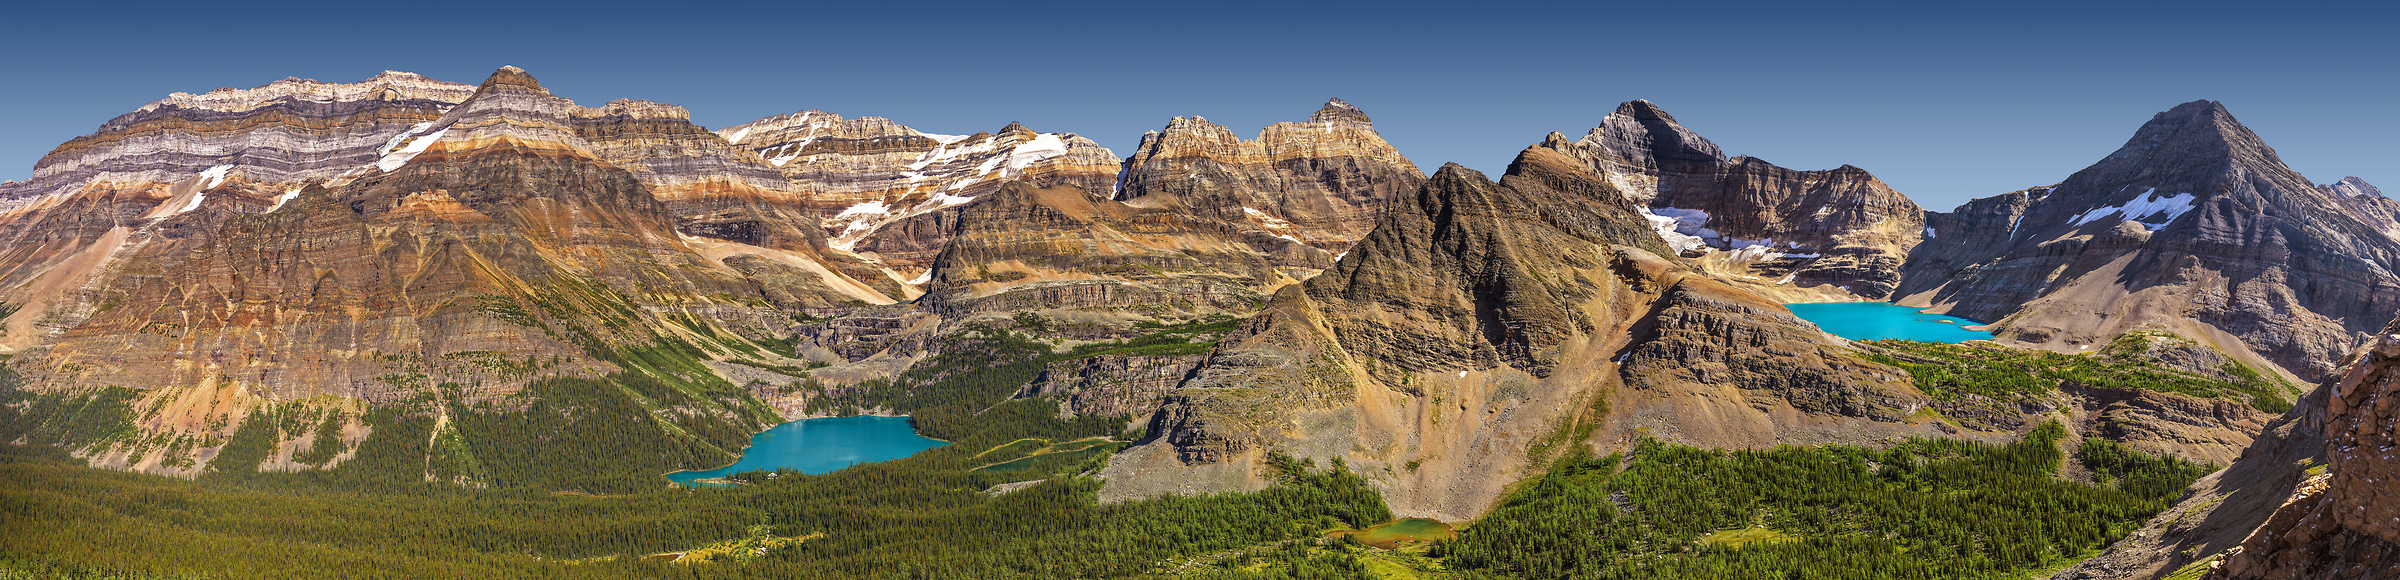 A very high resolution, large-format VAST photo print of mountains and lakes; fine art landscape photo created by Chris Collacott in Yoho National Park, British Columbia, Canada